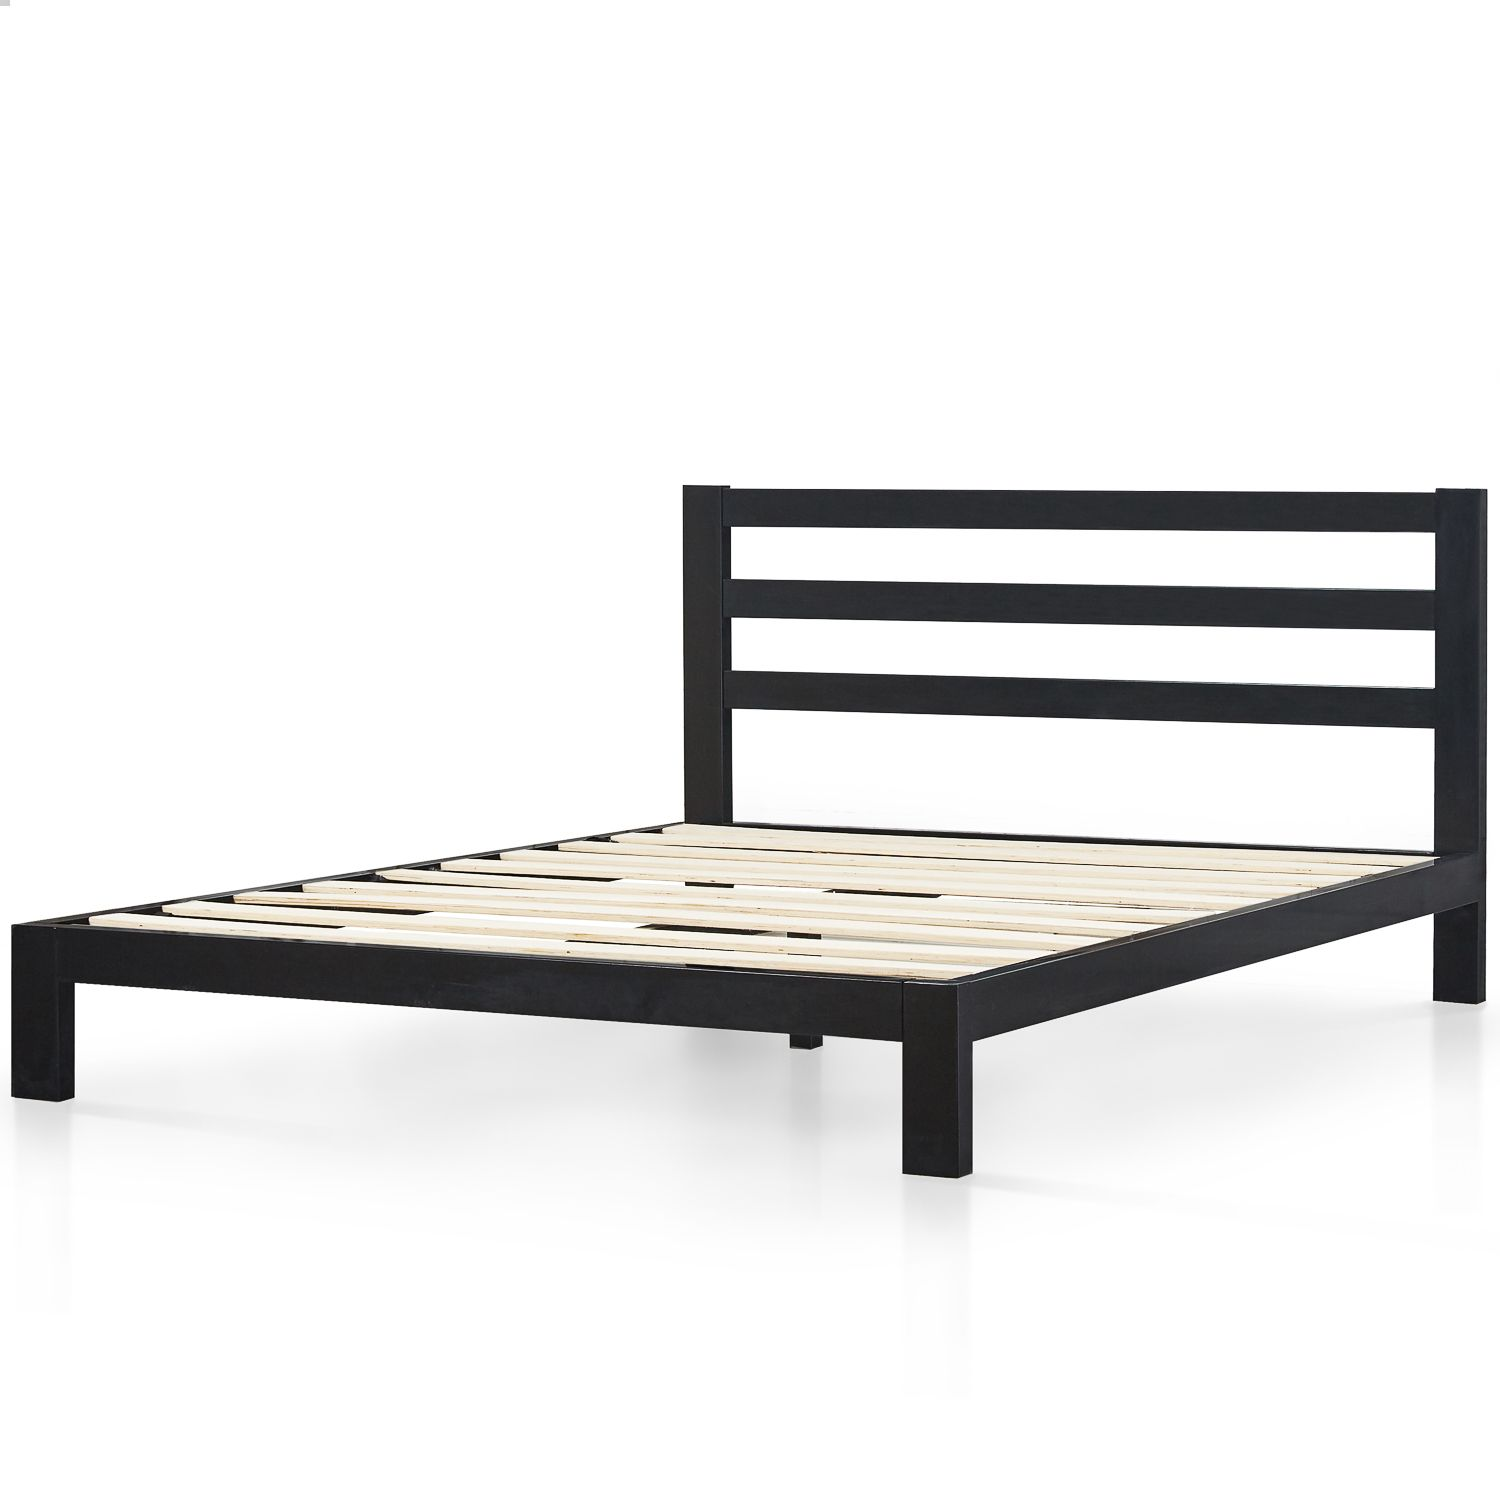 Home In 2020 Metal Platform Bed Headboards For Beds Platform Bed